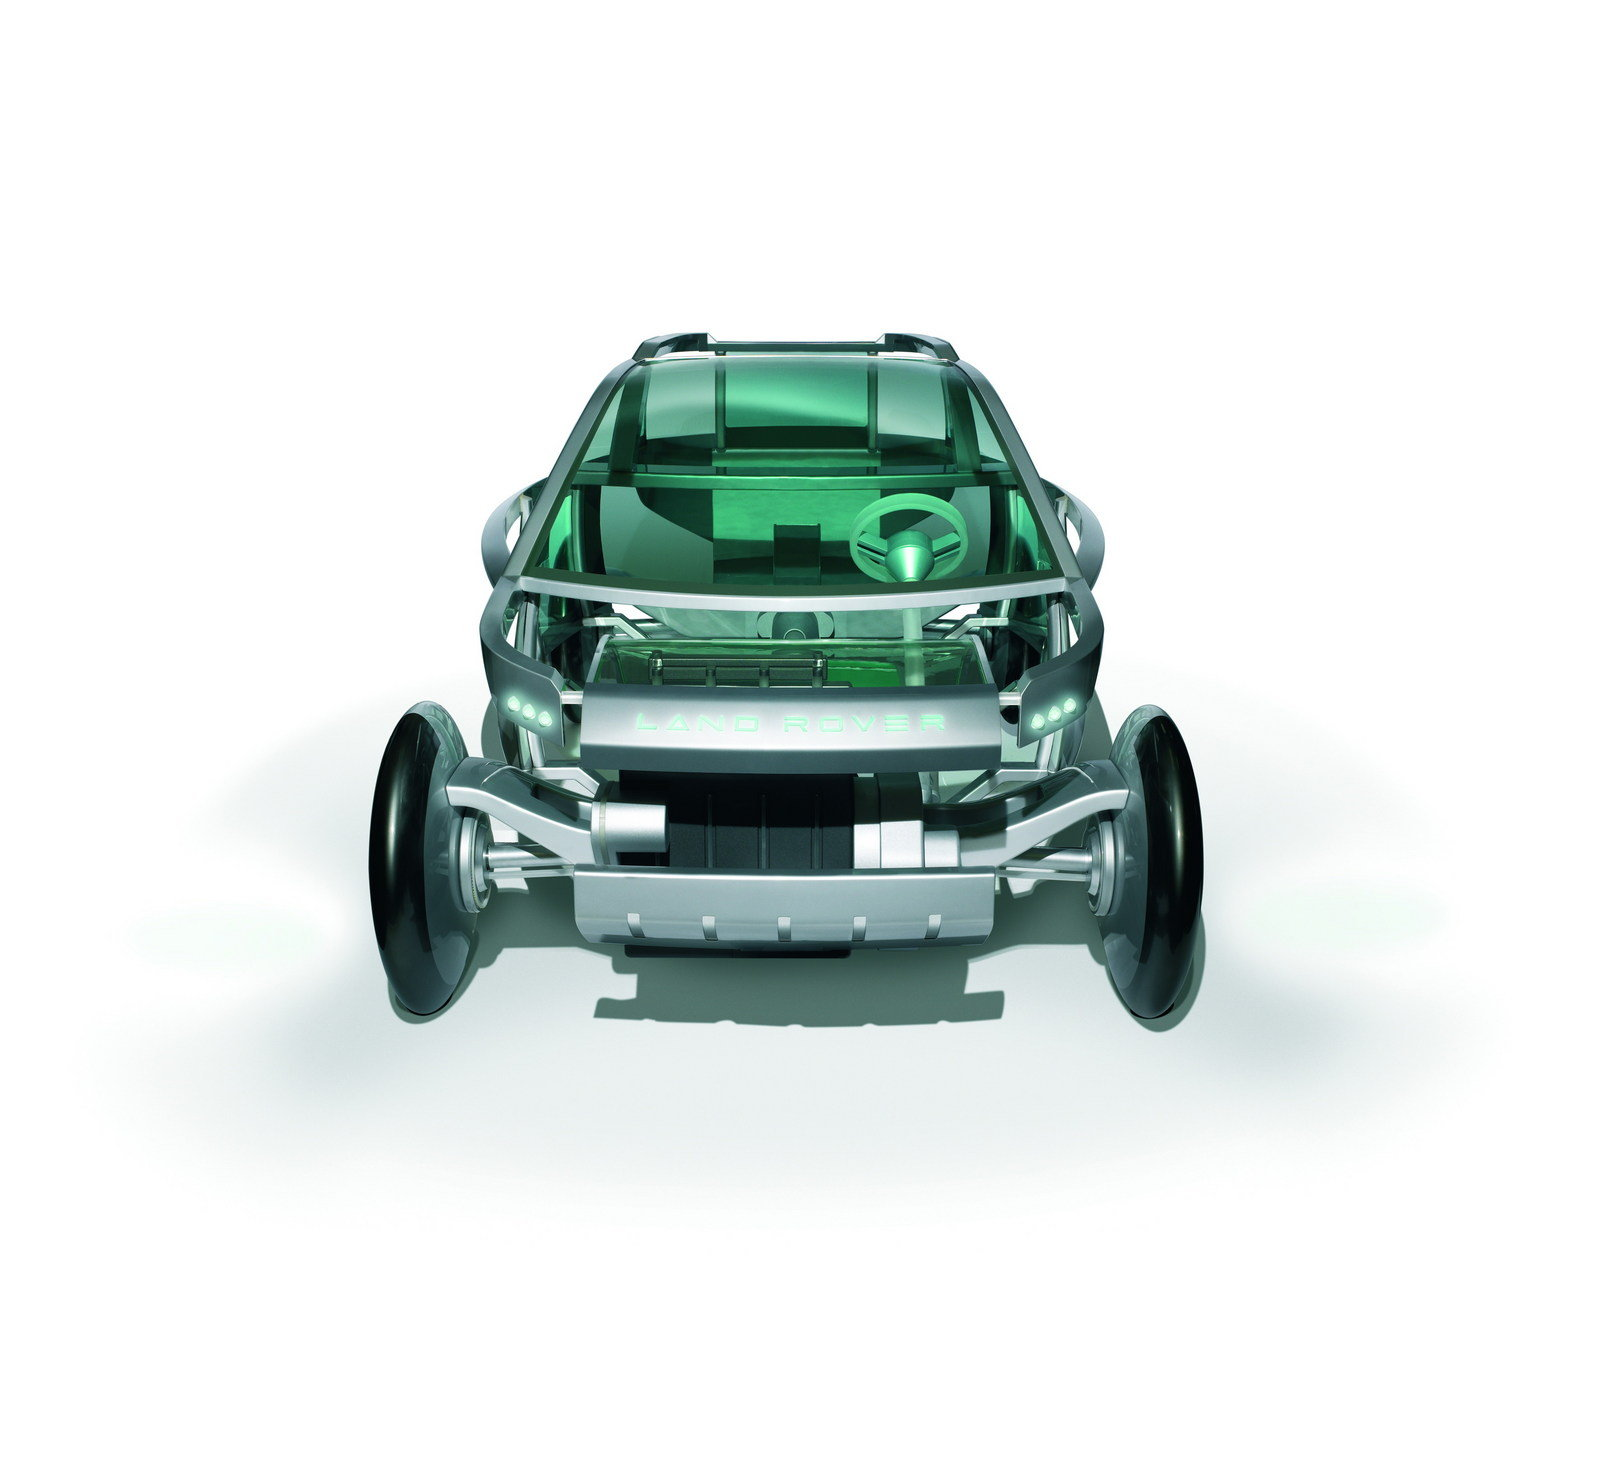 http://pictures.topspeed.com/IMG/crop/200602/2006-land-rover-land_e-co-3_1600x0w.jpg